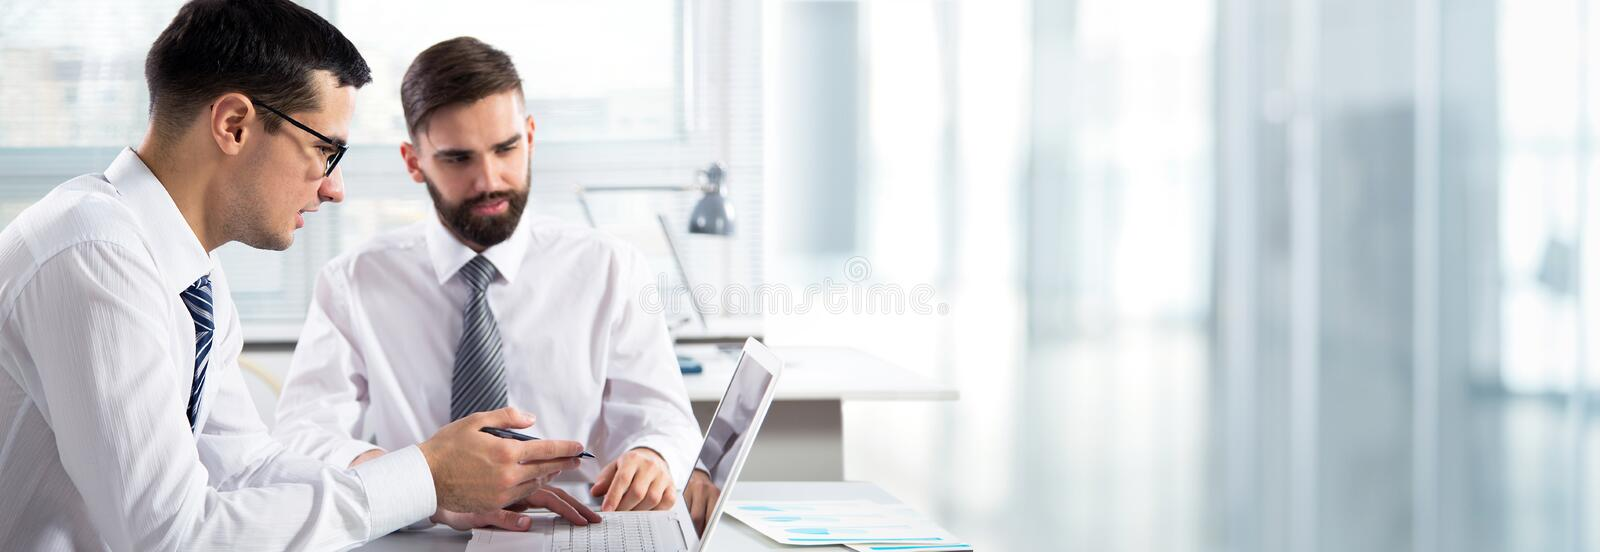 Young businessman working in an office stock photo